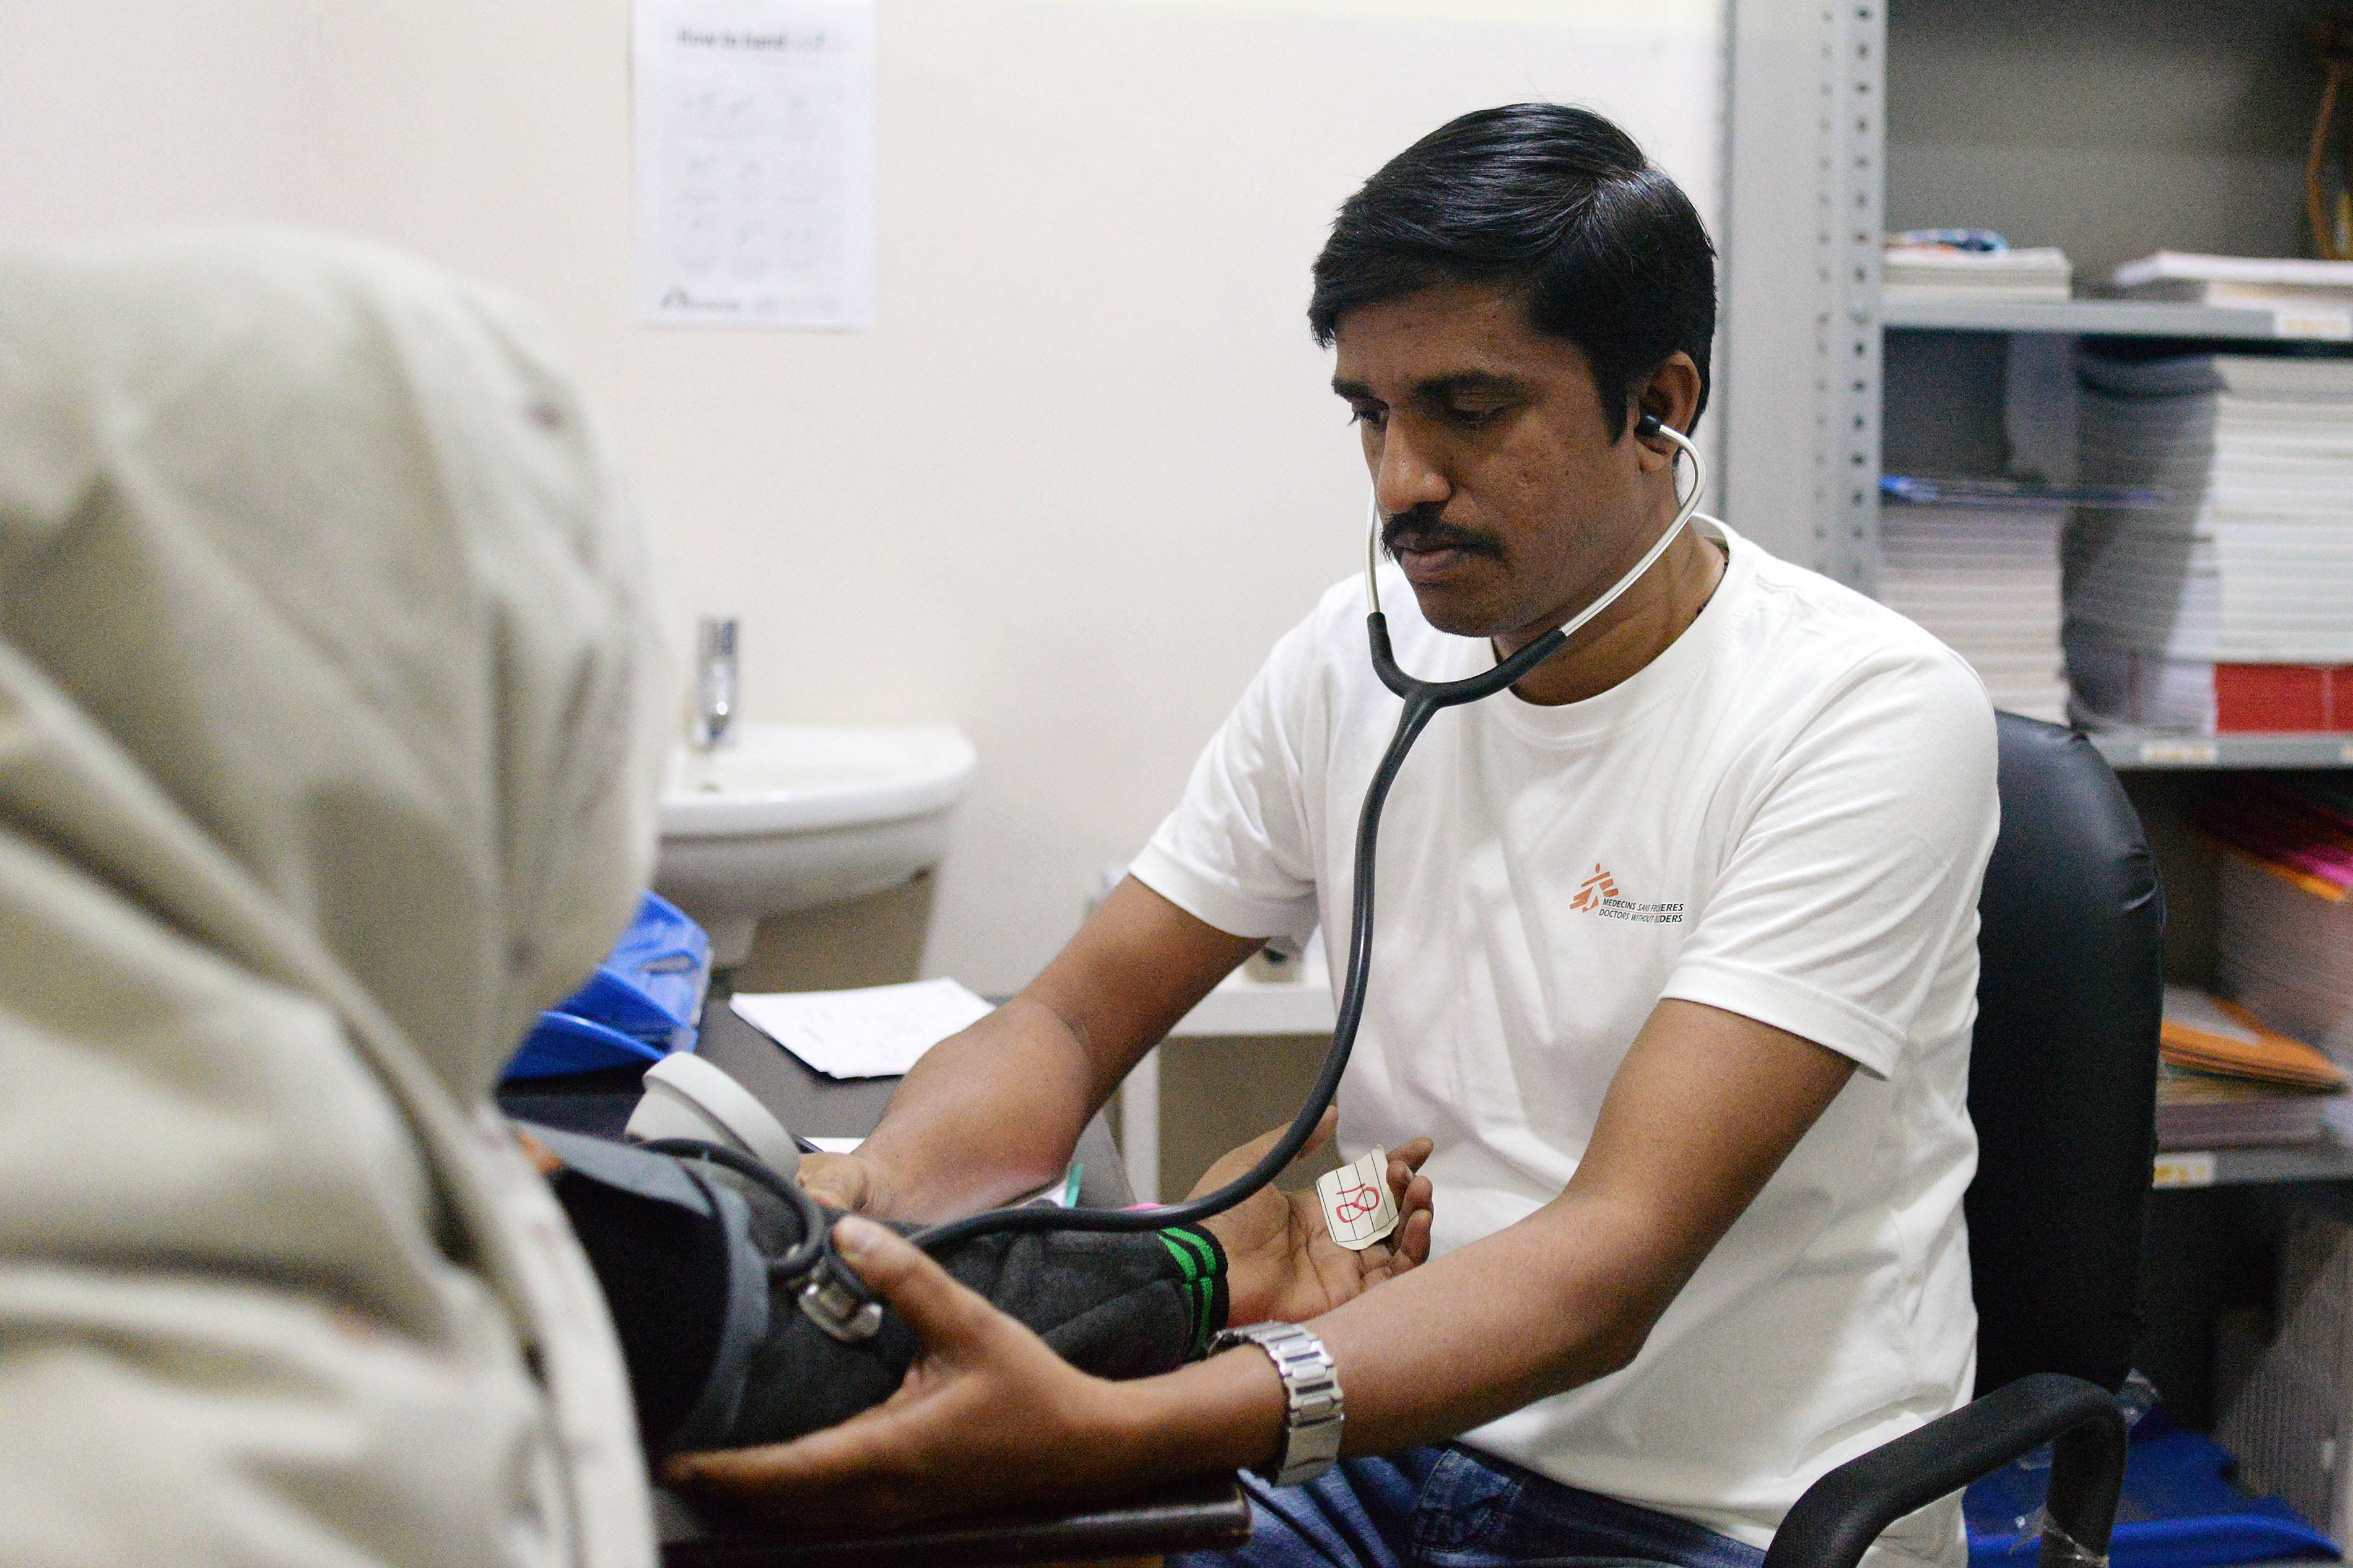 MSF Nurse Jijo Xavier checks the vitals of a patient at the PL Sharma District Hospital in Meerut city where MSF runs a Hepatitis C project in collaboration with the National Health Mission, providing free services.